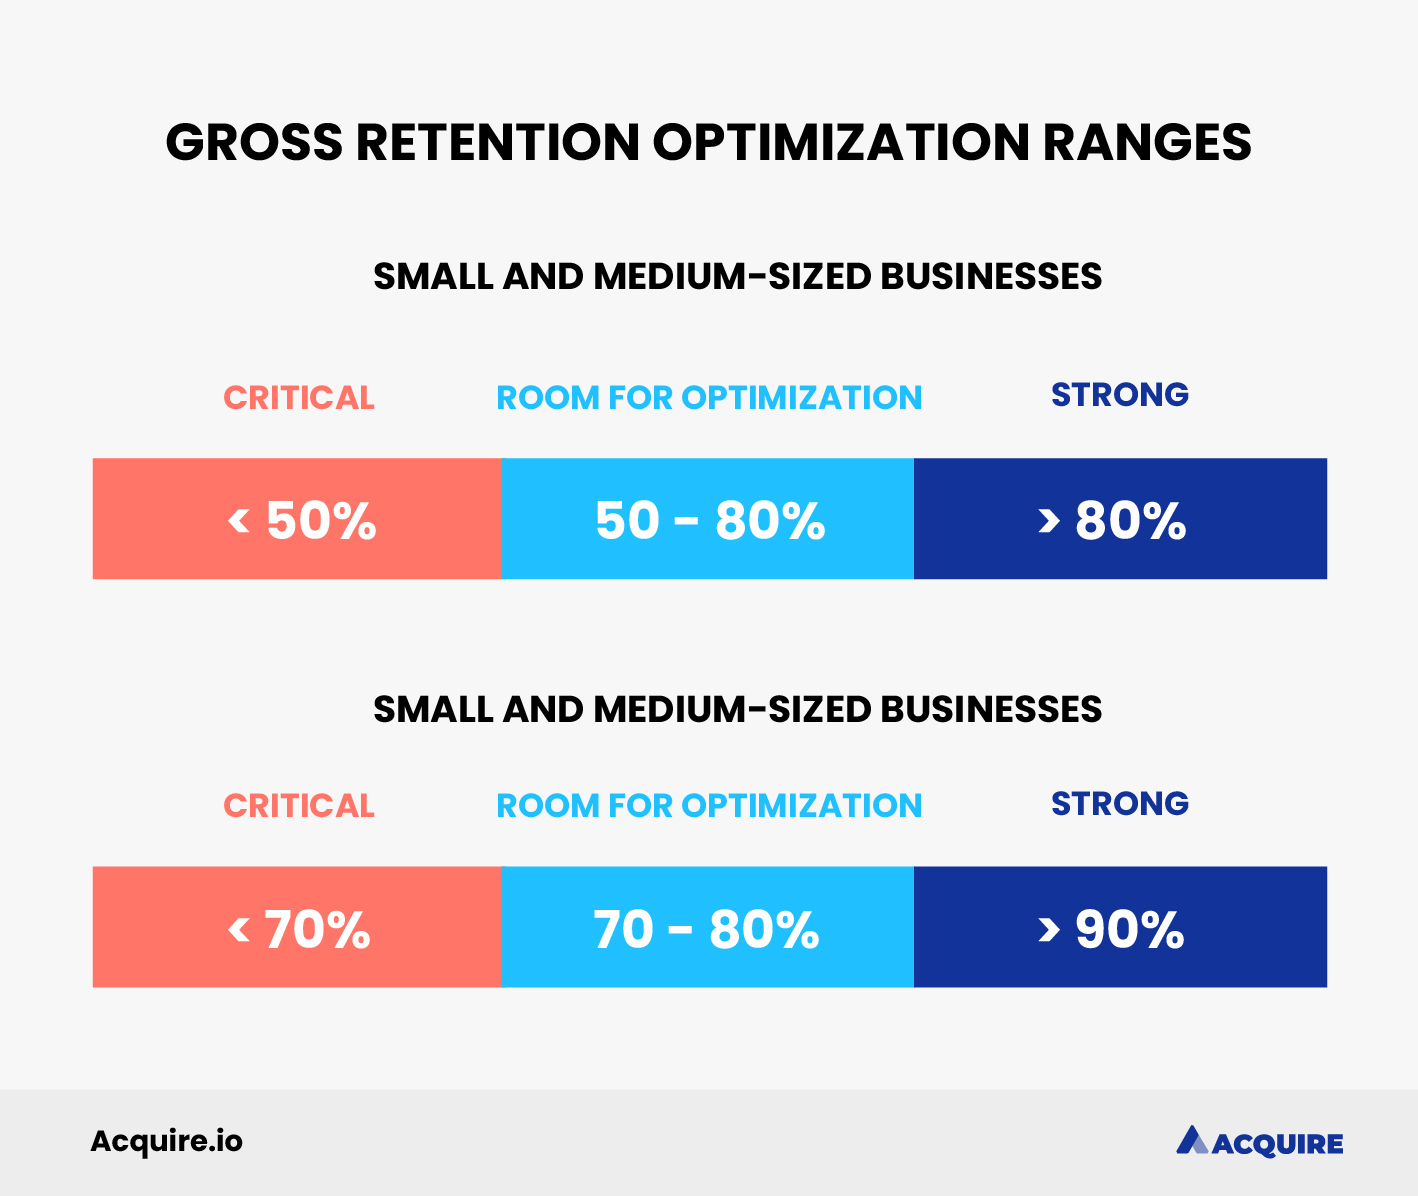 Optimal rages for gross retention rates per business size